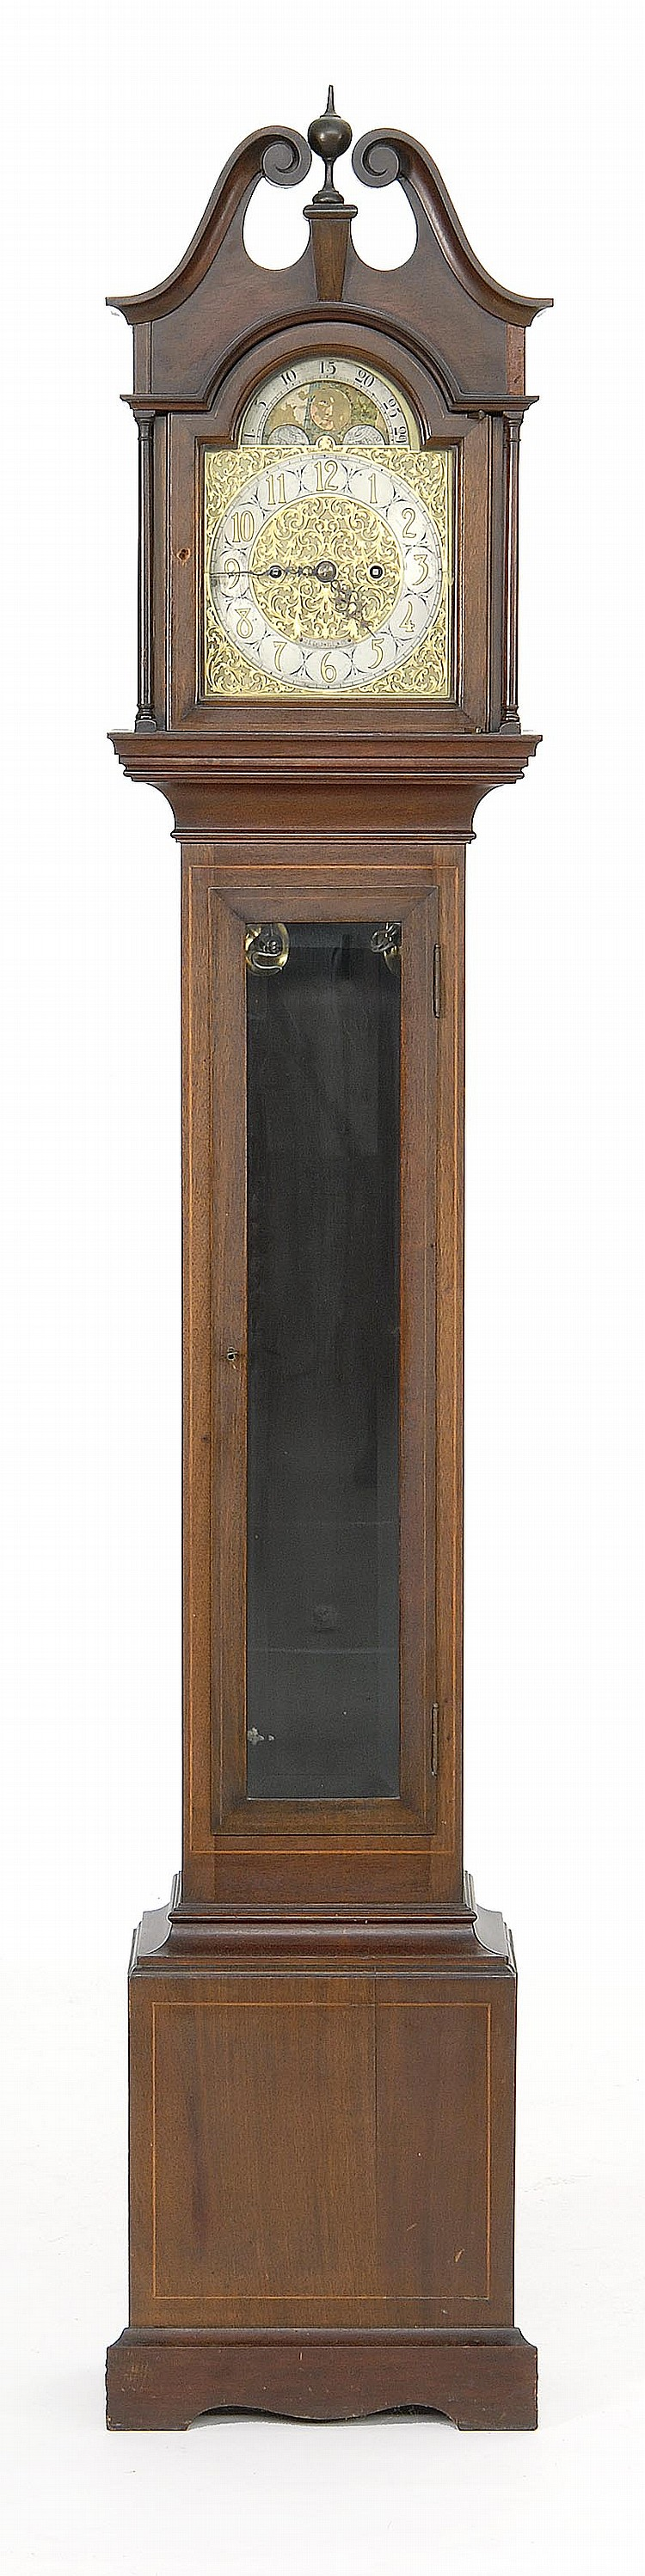 DIMINUTIVE TALL-CASE CLOCK Made for J.E. Caldwell & Co. Mahogany case with string inlay. Bonnet with broken arch pediment and centra...